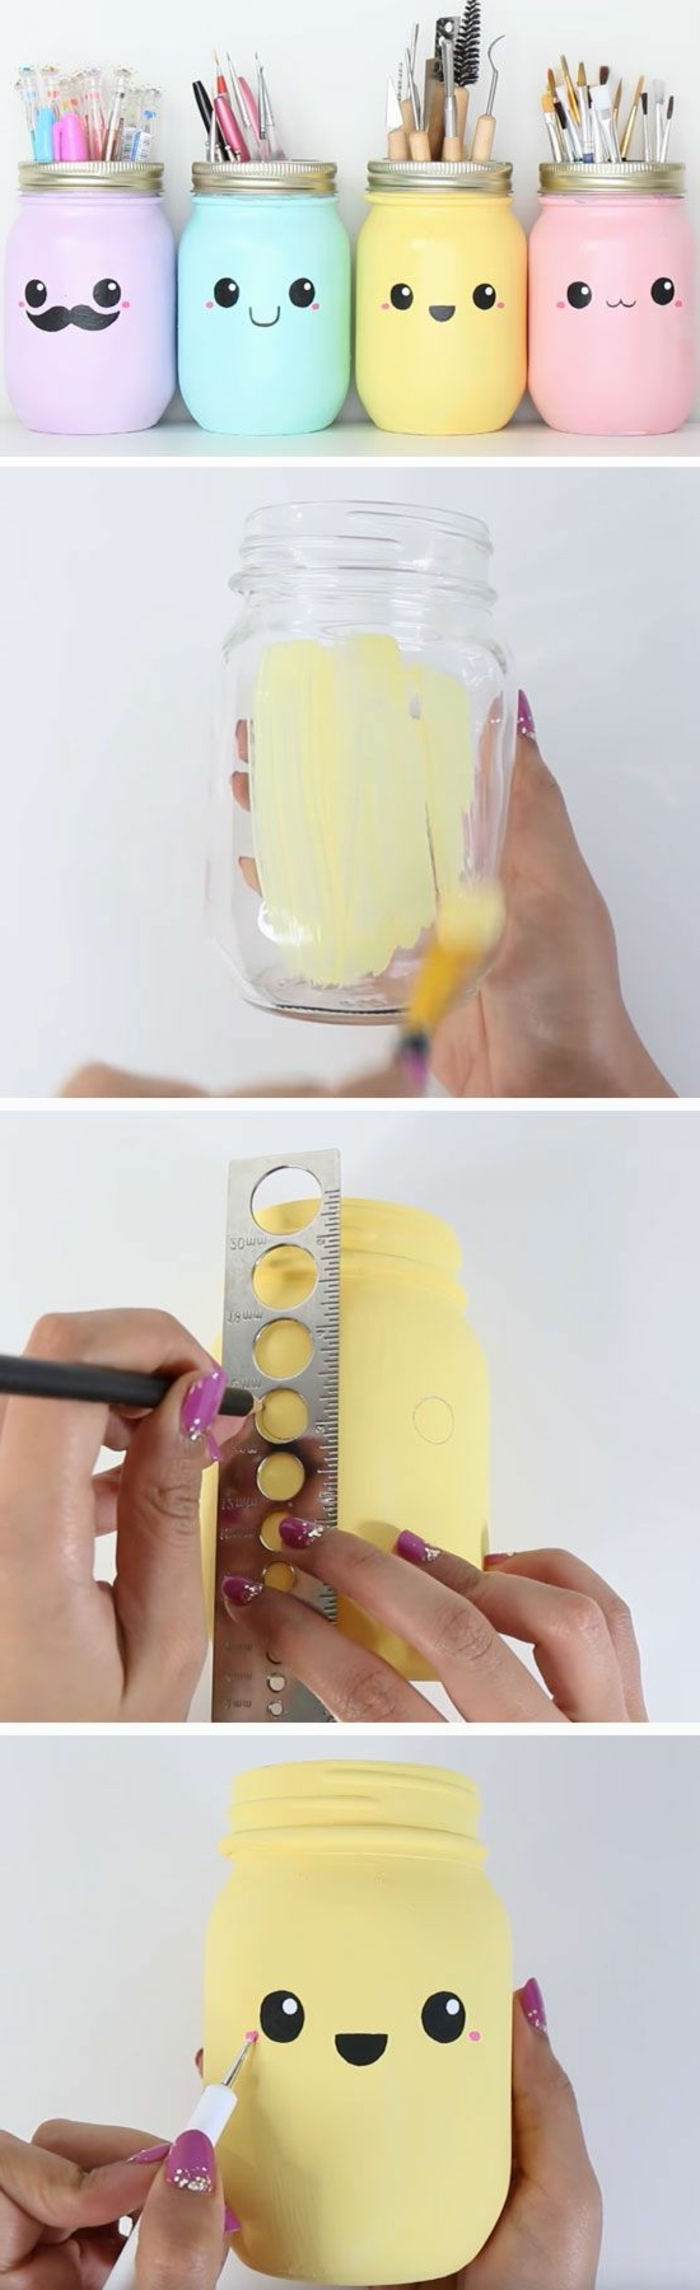 mason jars, turned into pencil holders, purple and blue, yellow and pink paint, fun crafts for teens